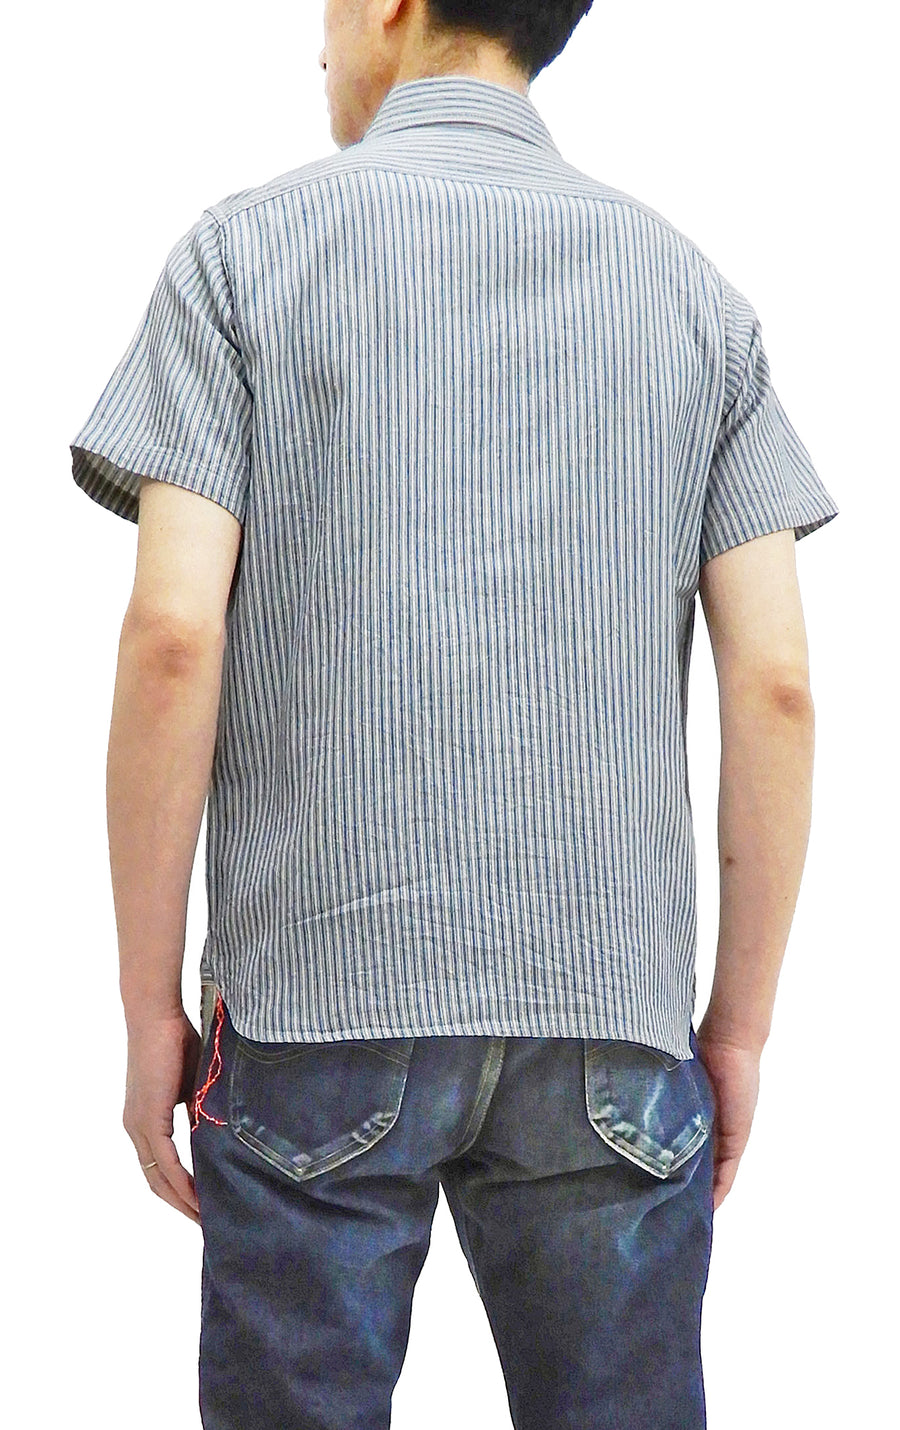 Sugar Cane Shirt Men's Short Sleeve Indigo Vertical Striped Work Shirt SC38694 Blue/Off-WHite Stripe